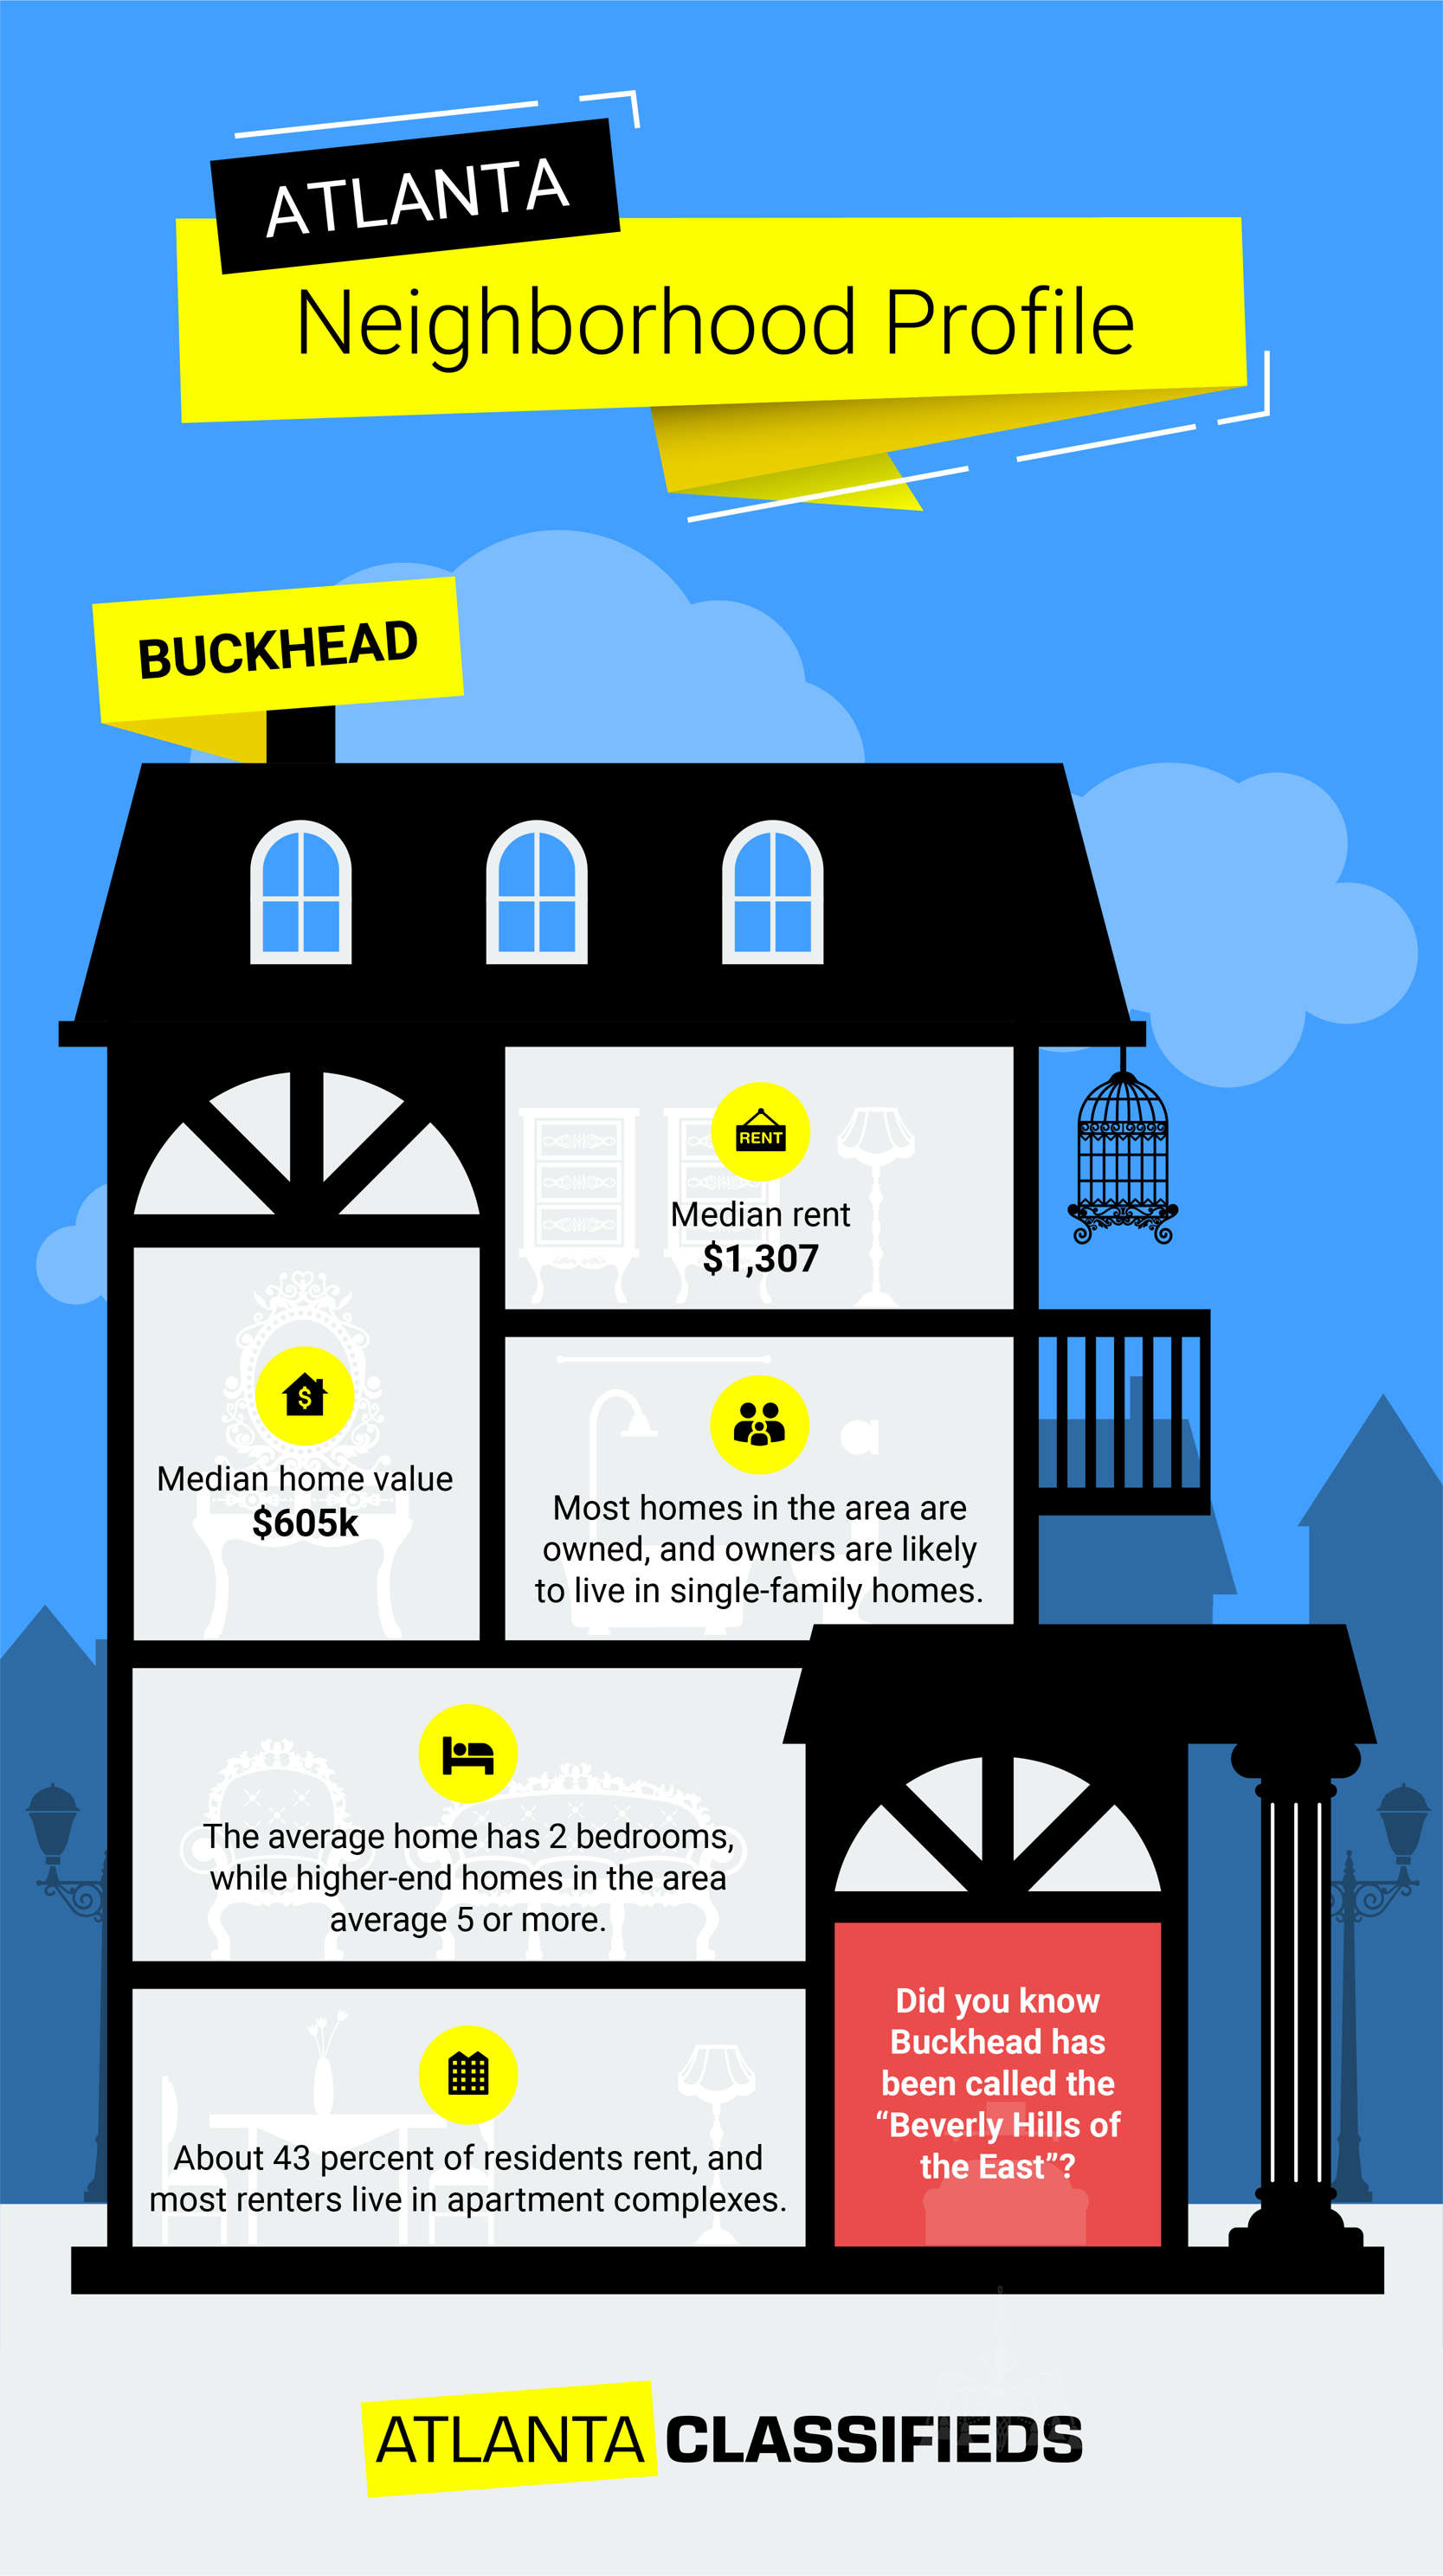 Tips for renting an apartment or buying a home in Buckhead Atlanta, GA.